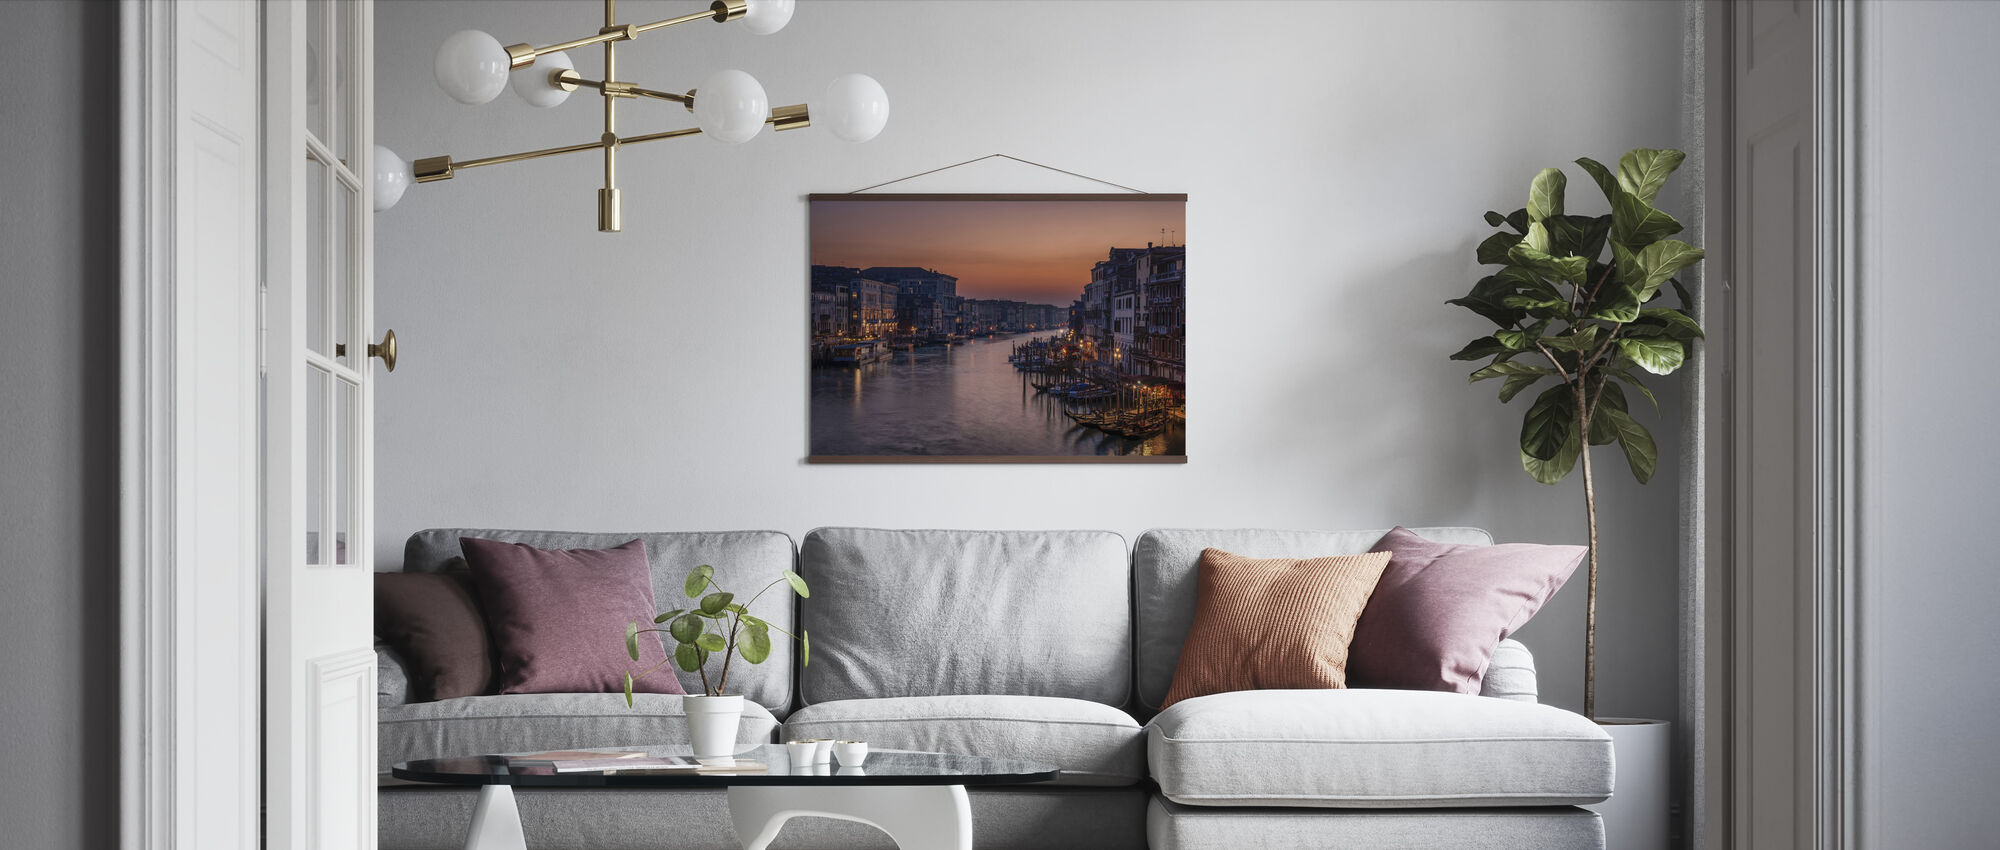 Venice Grand Canal at Sunset - Poster - Living Room